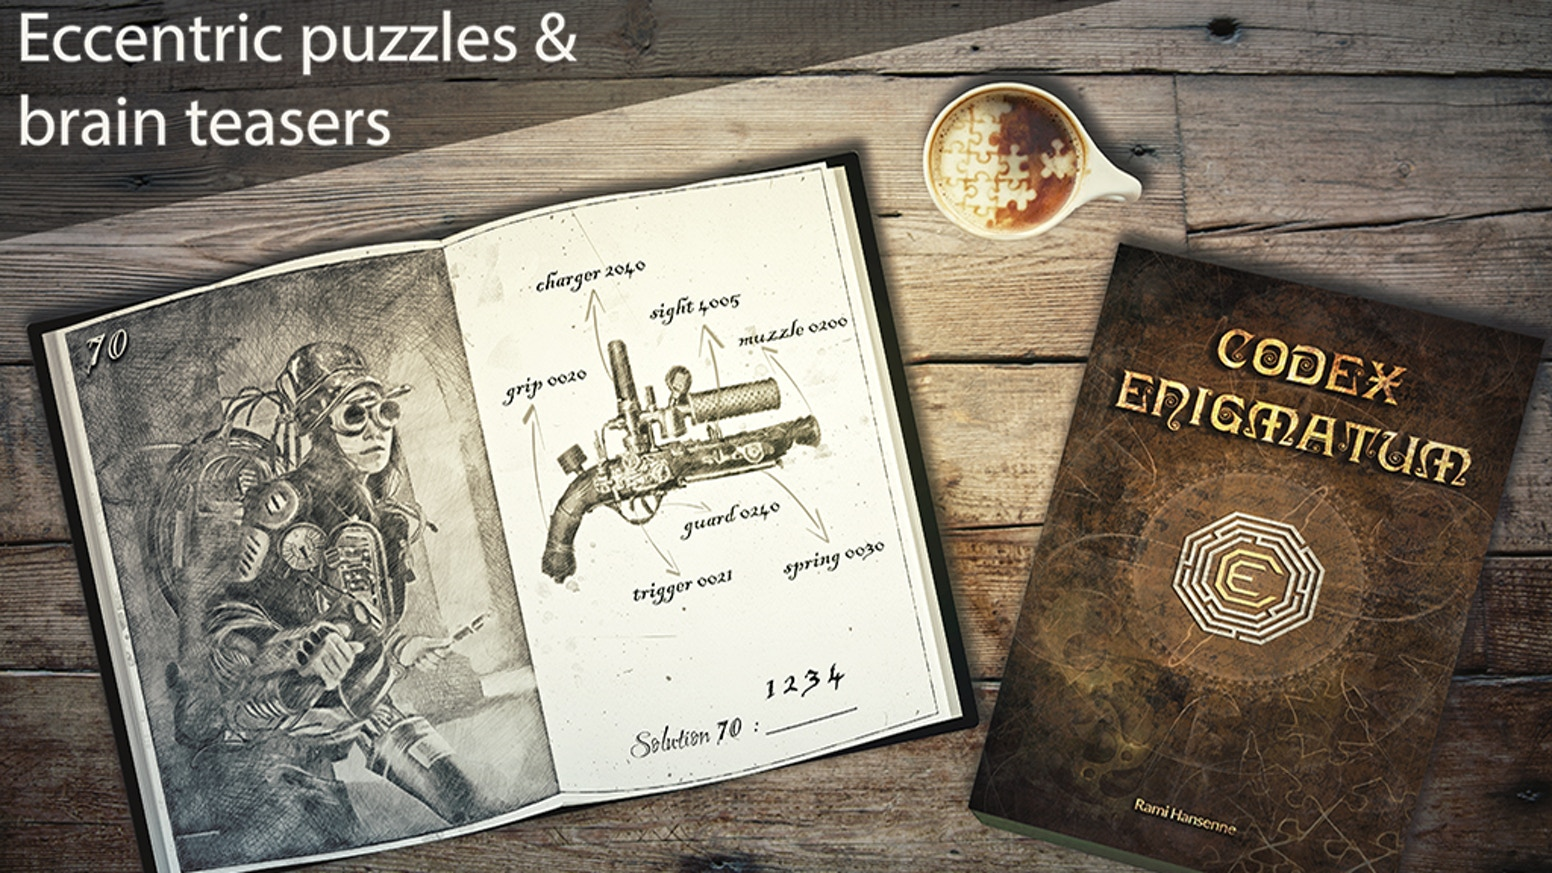 Codex Enigmatum is an immersive and richly illustrated puzzle book, filled with a diverse mix of unique and interrelated brain teasers